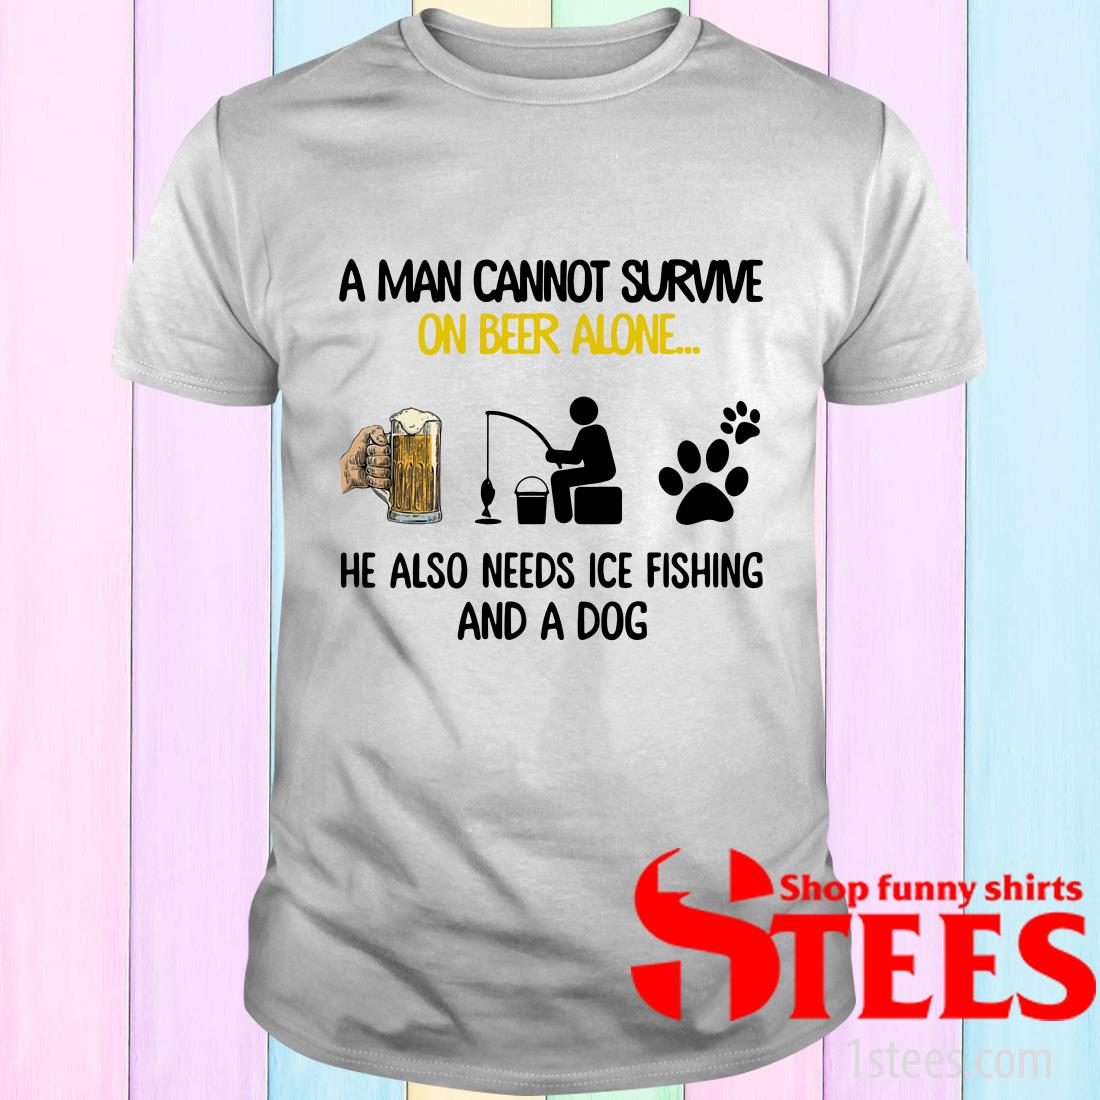 A Man Cannot Survive On Beer Alone He Also Needs Ice Fishing And A Dog T-Shirt